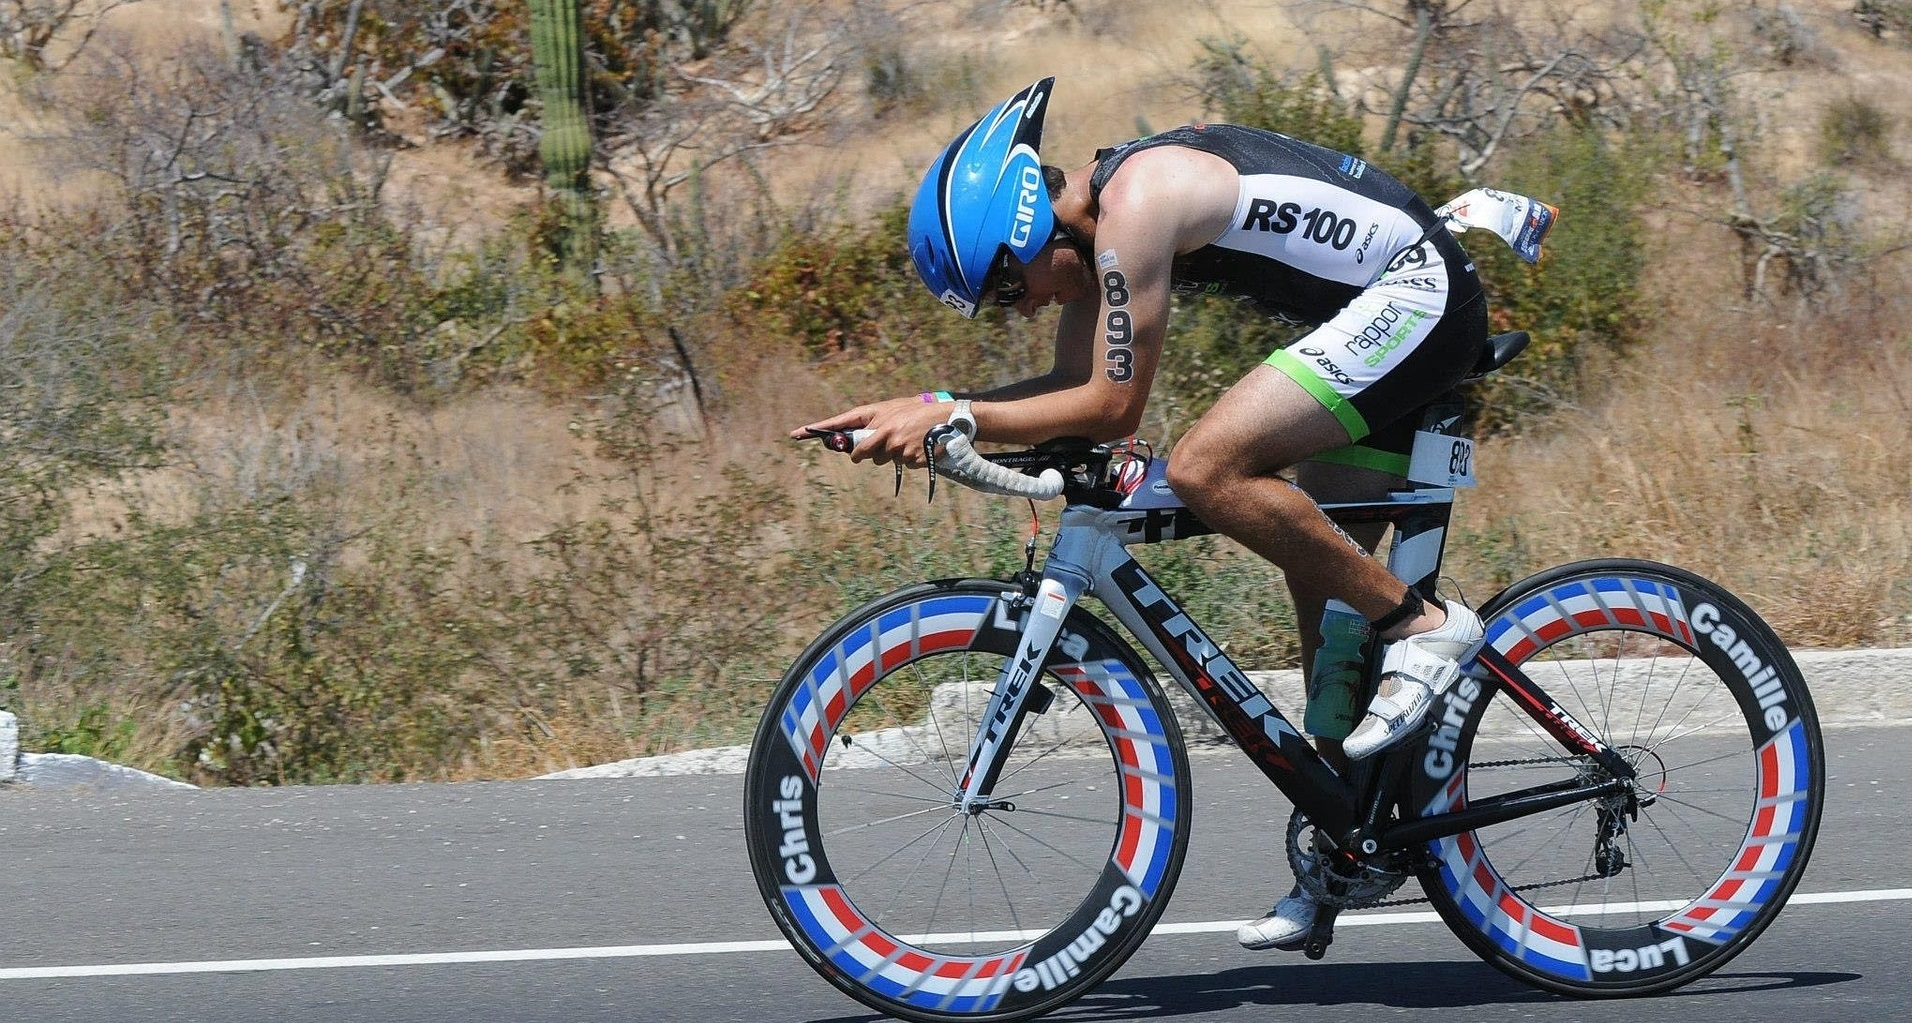 Full Ironman Triathlon Distances Miles Kilometers